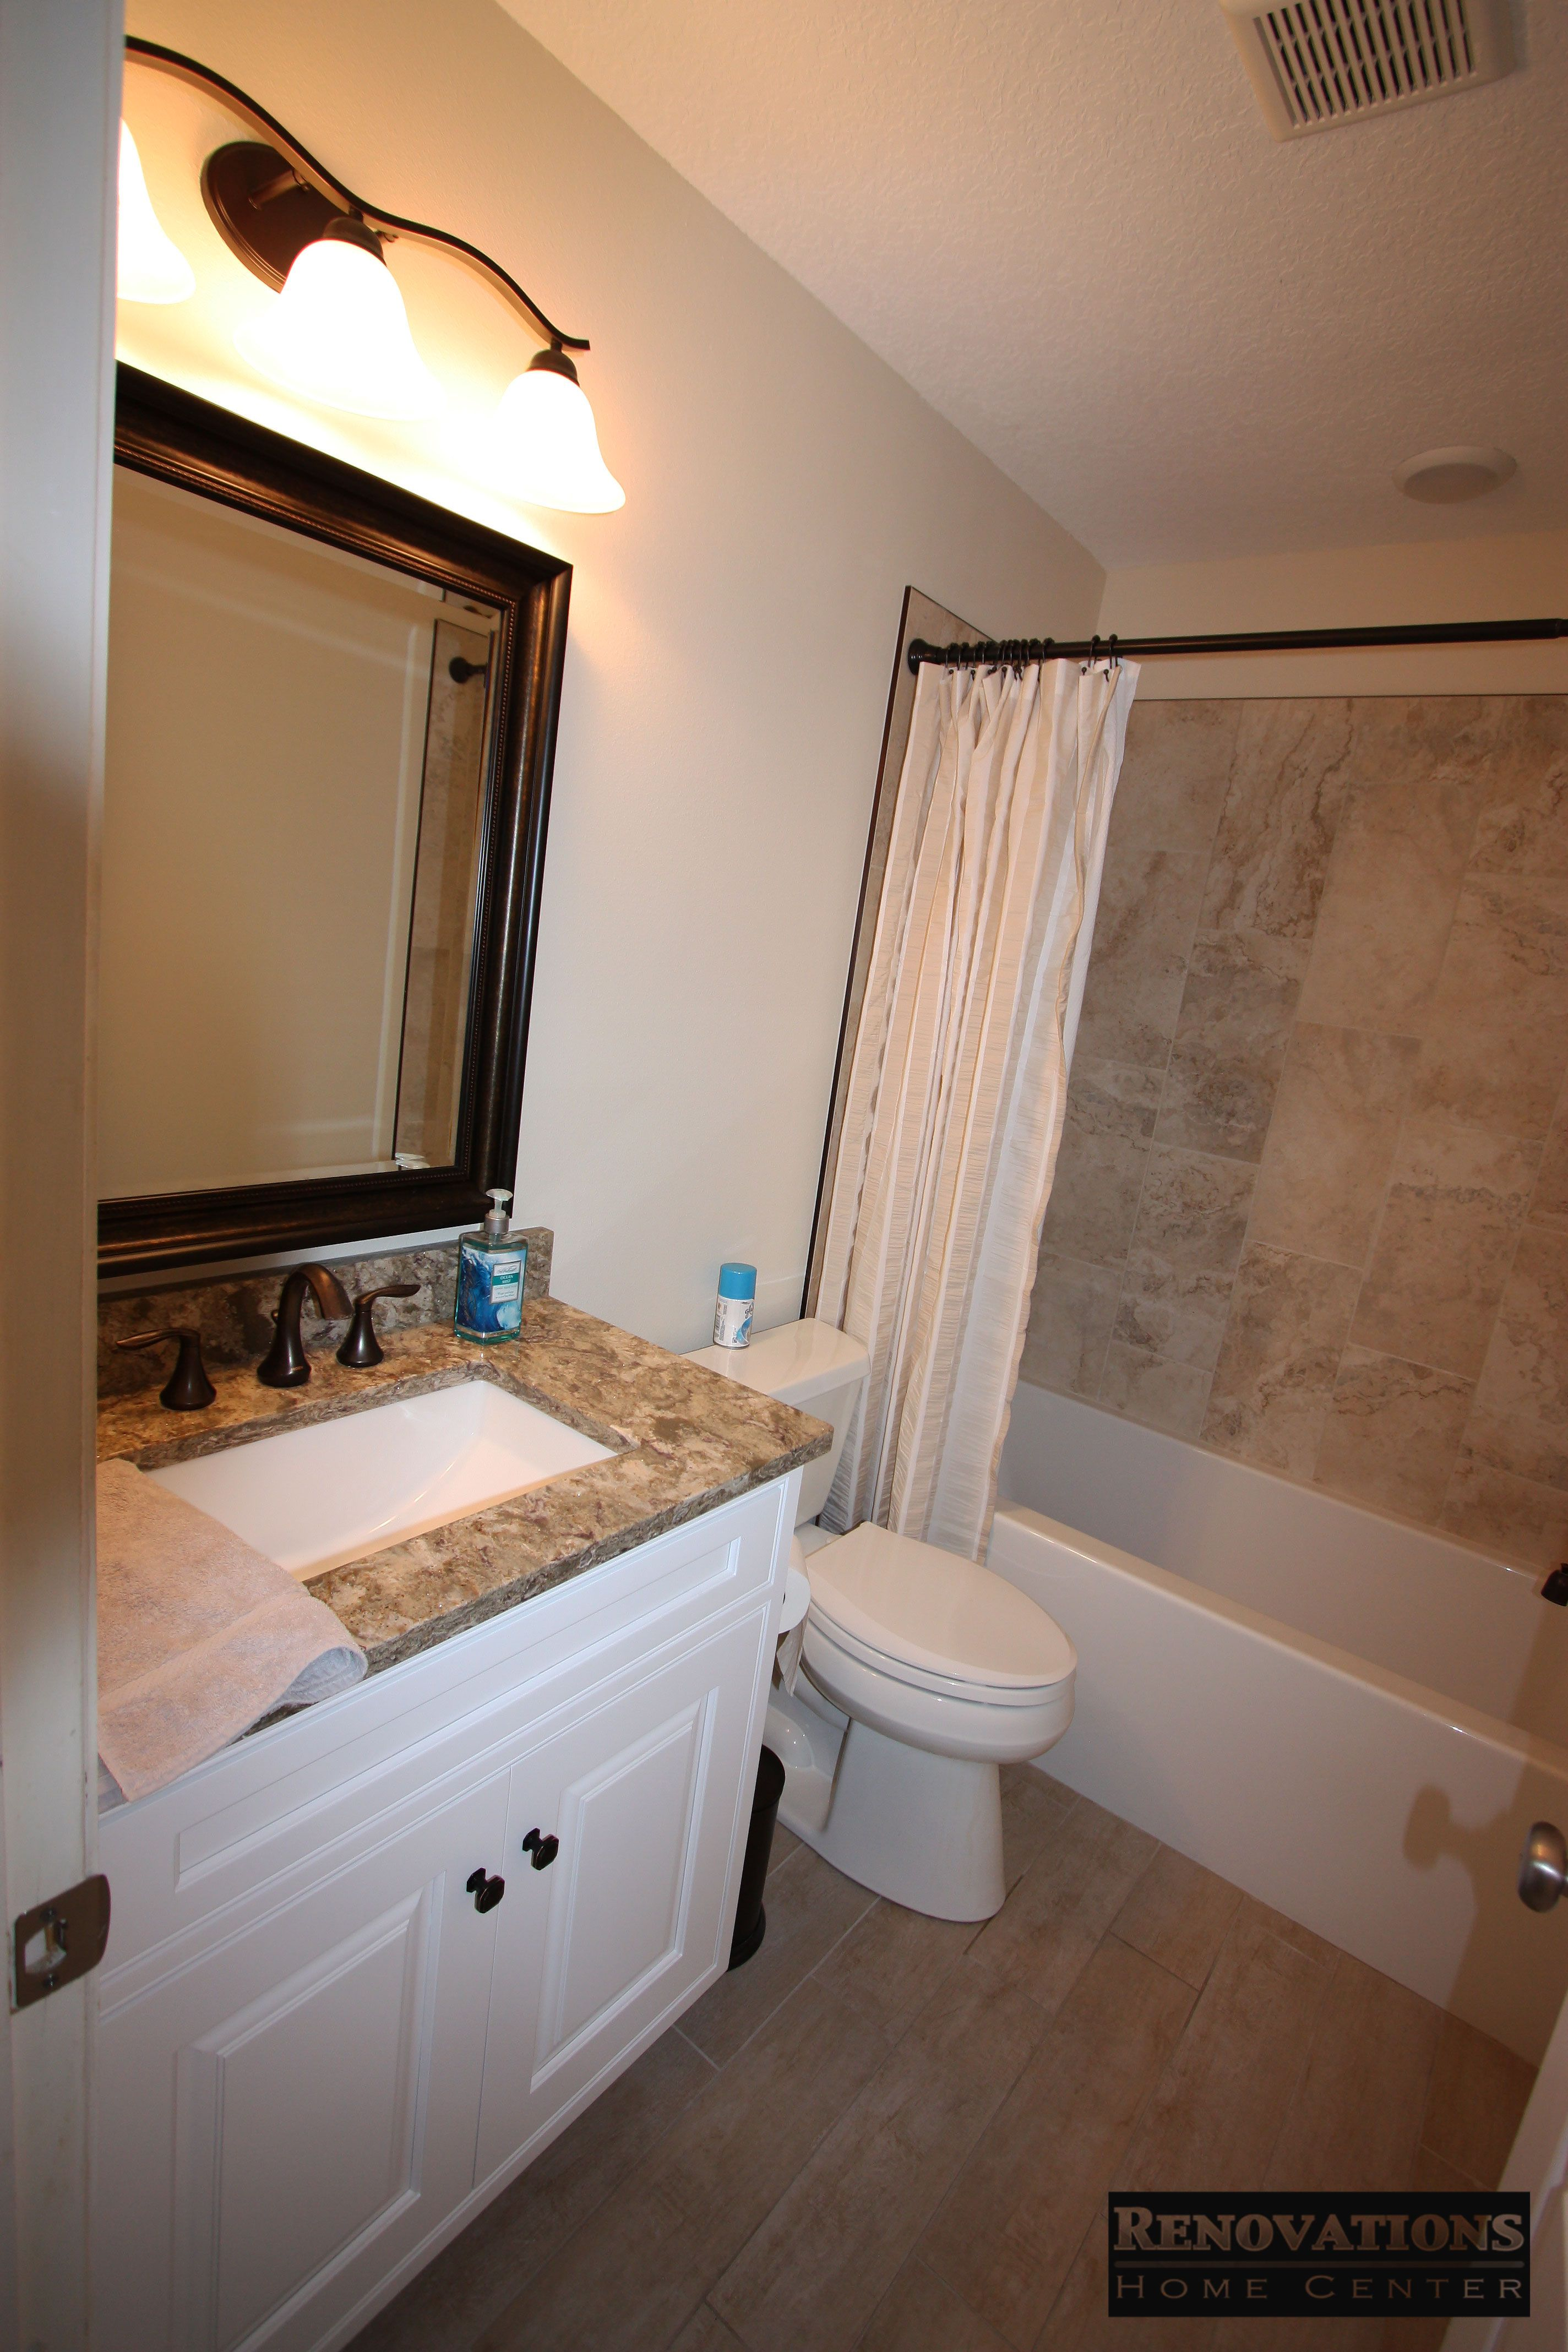 Kitchen and Bath Remodeling Contractors in Palm Harbor